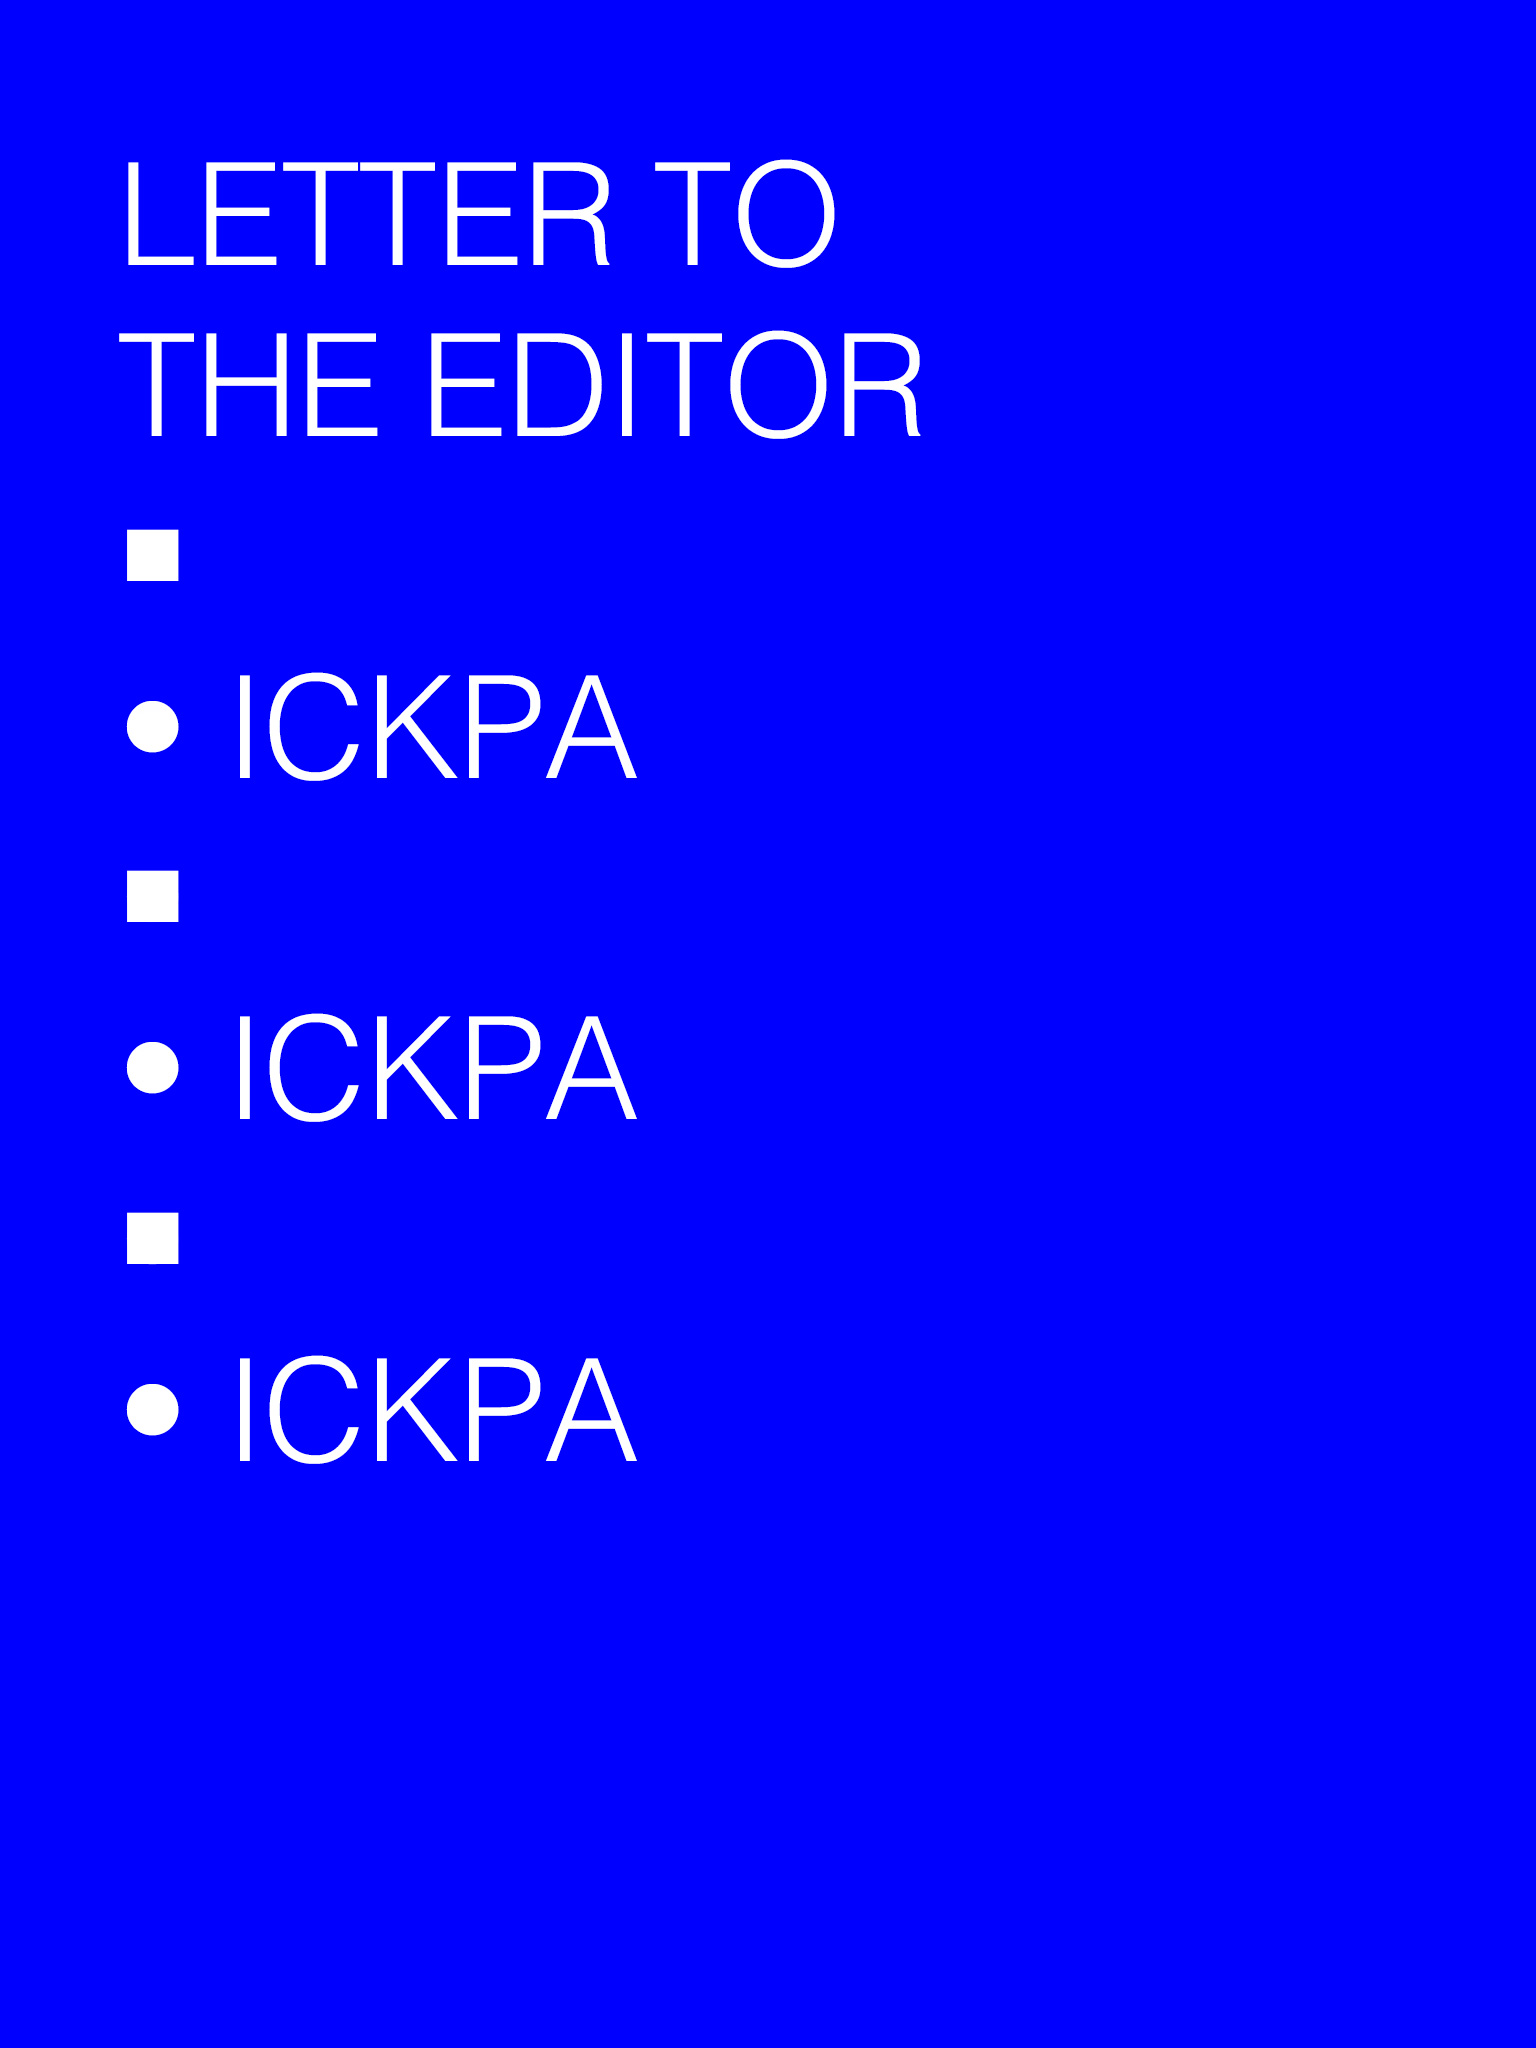 Letter to the Editor, from ICKPA Festival